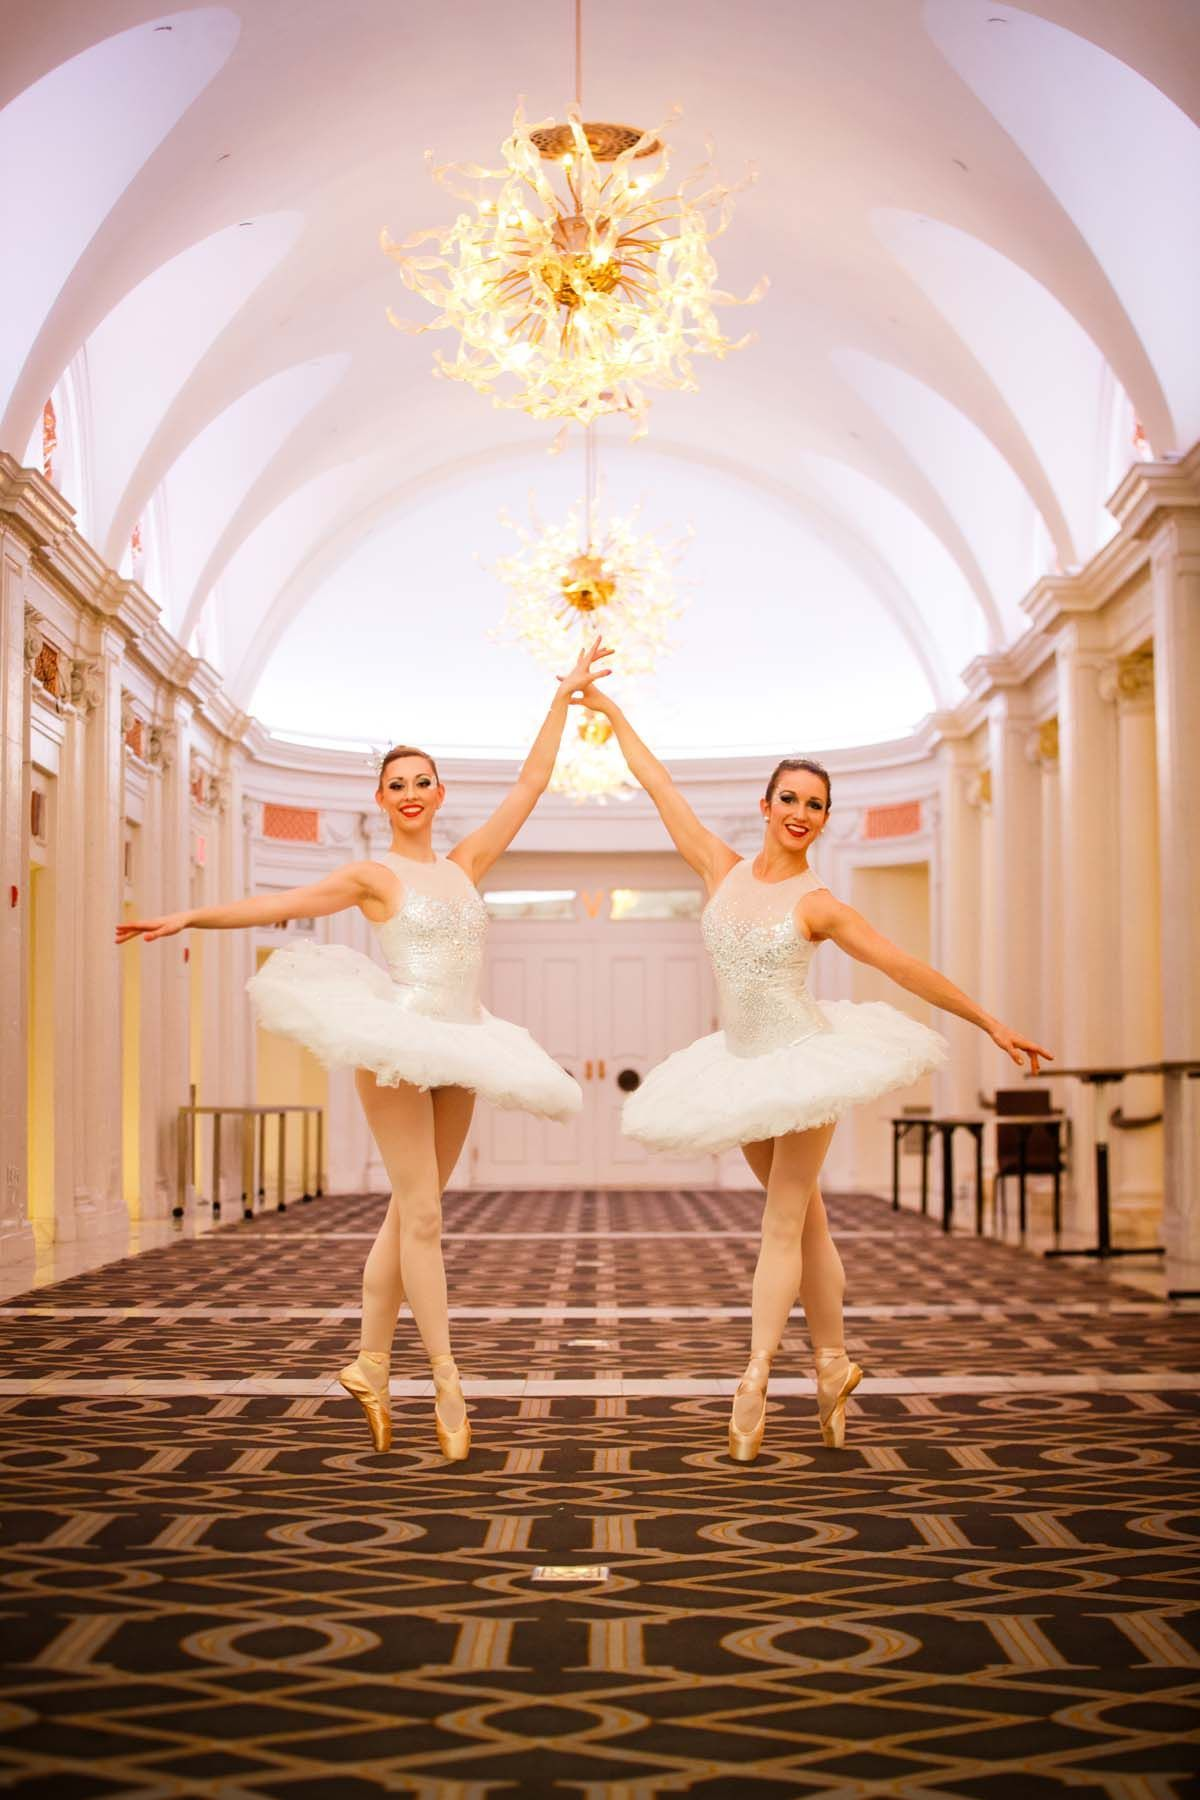 A show-stopping Nutcracker ballet performance at our Living Grand for the Holidays event at Grand Hyatt New York.